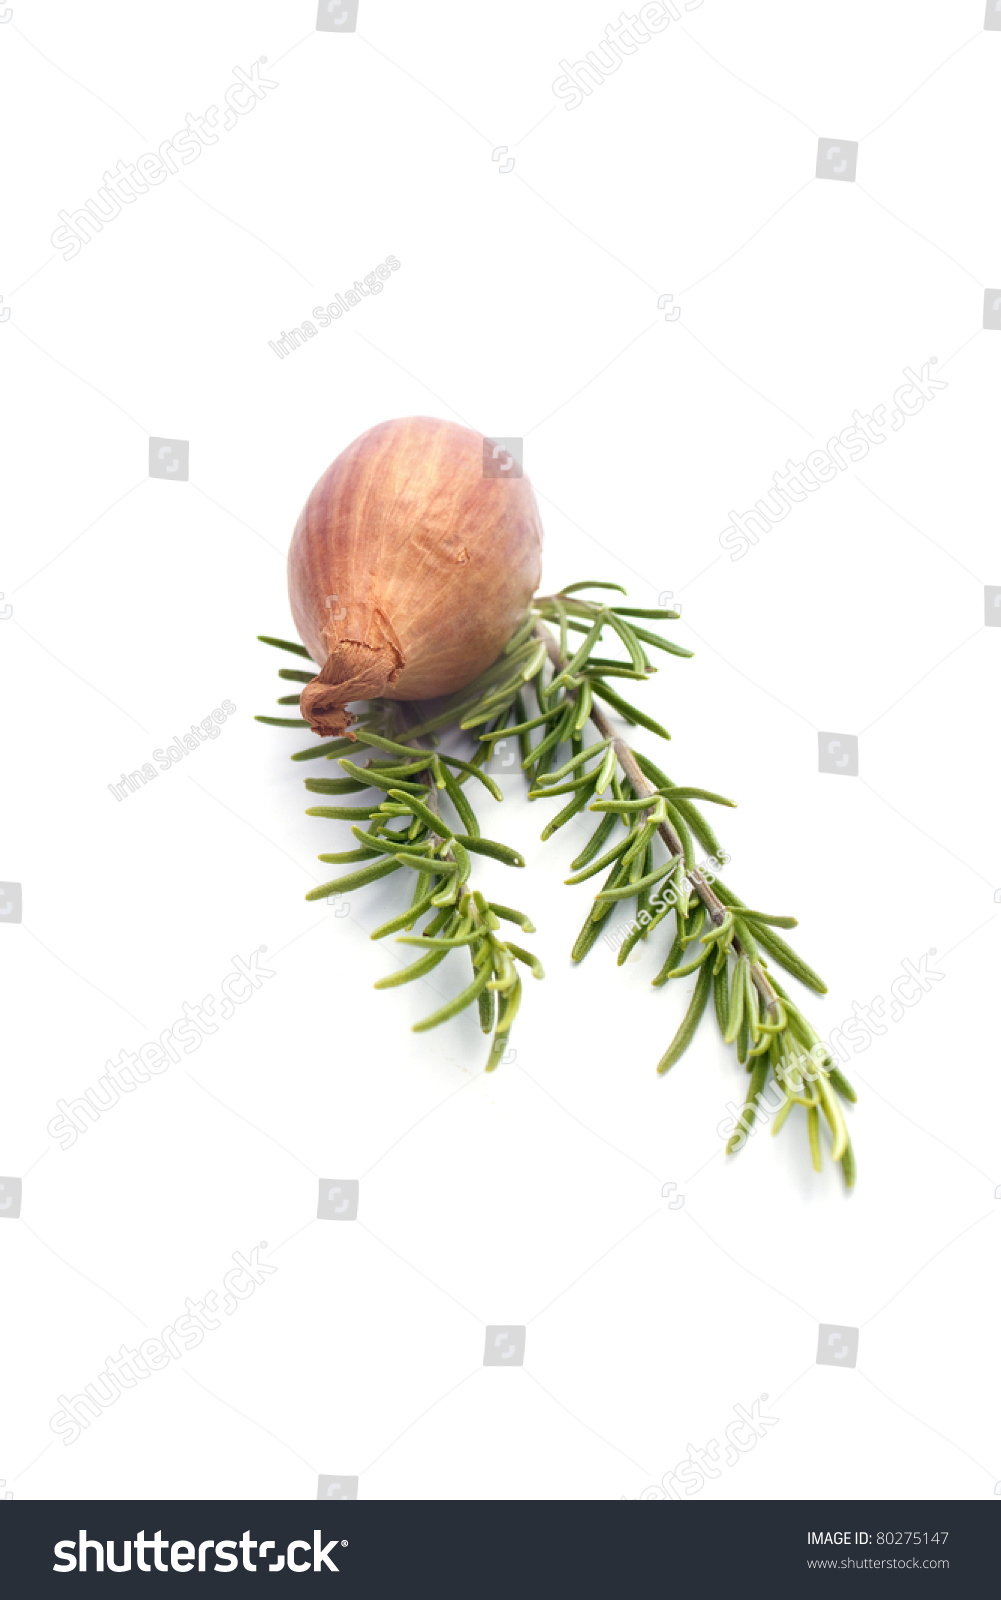 Summer Vegetables : Onion And Rosemary Isolated On White ...